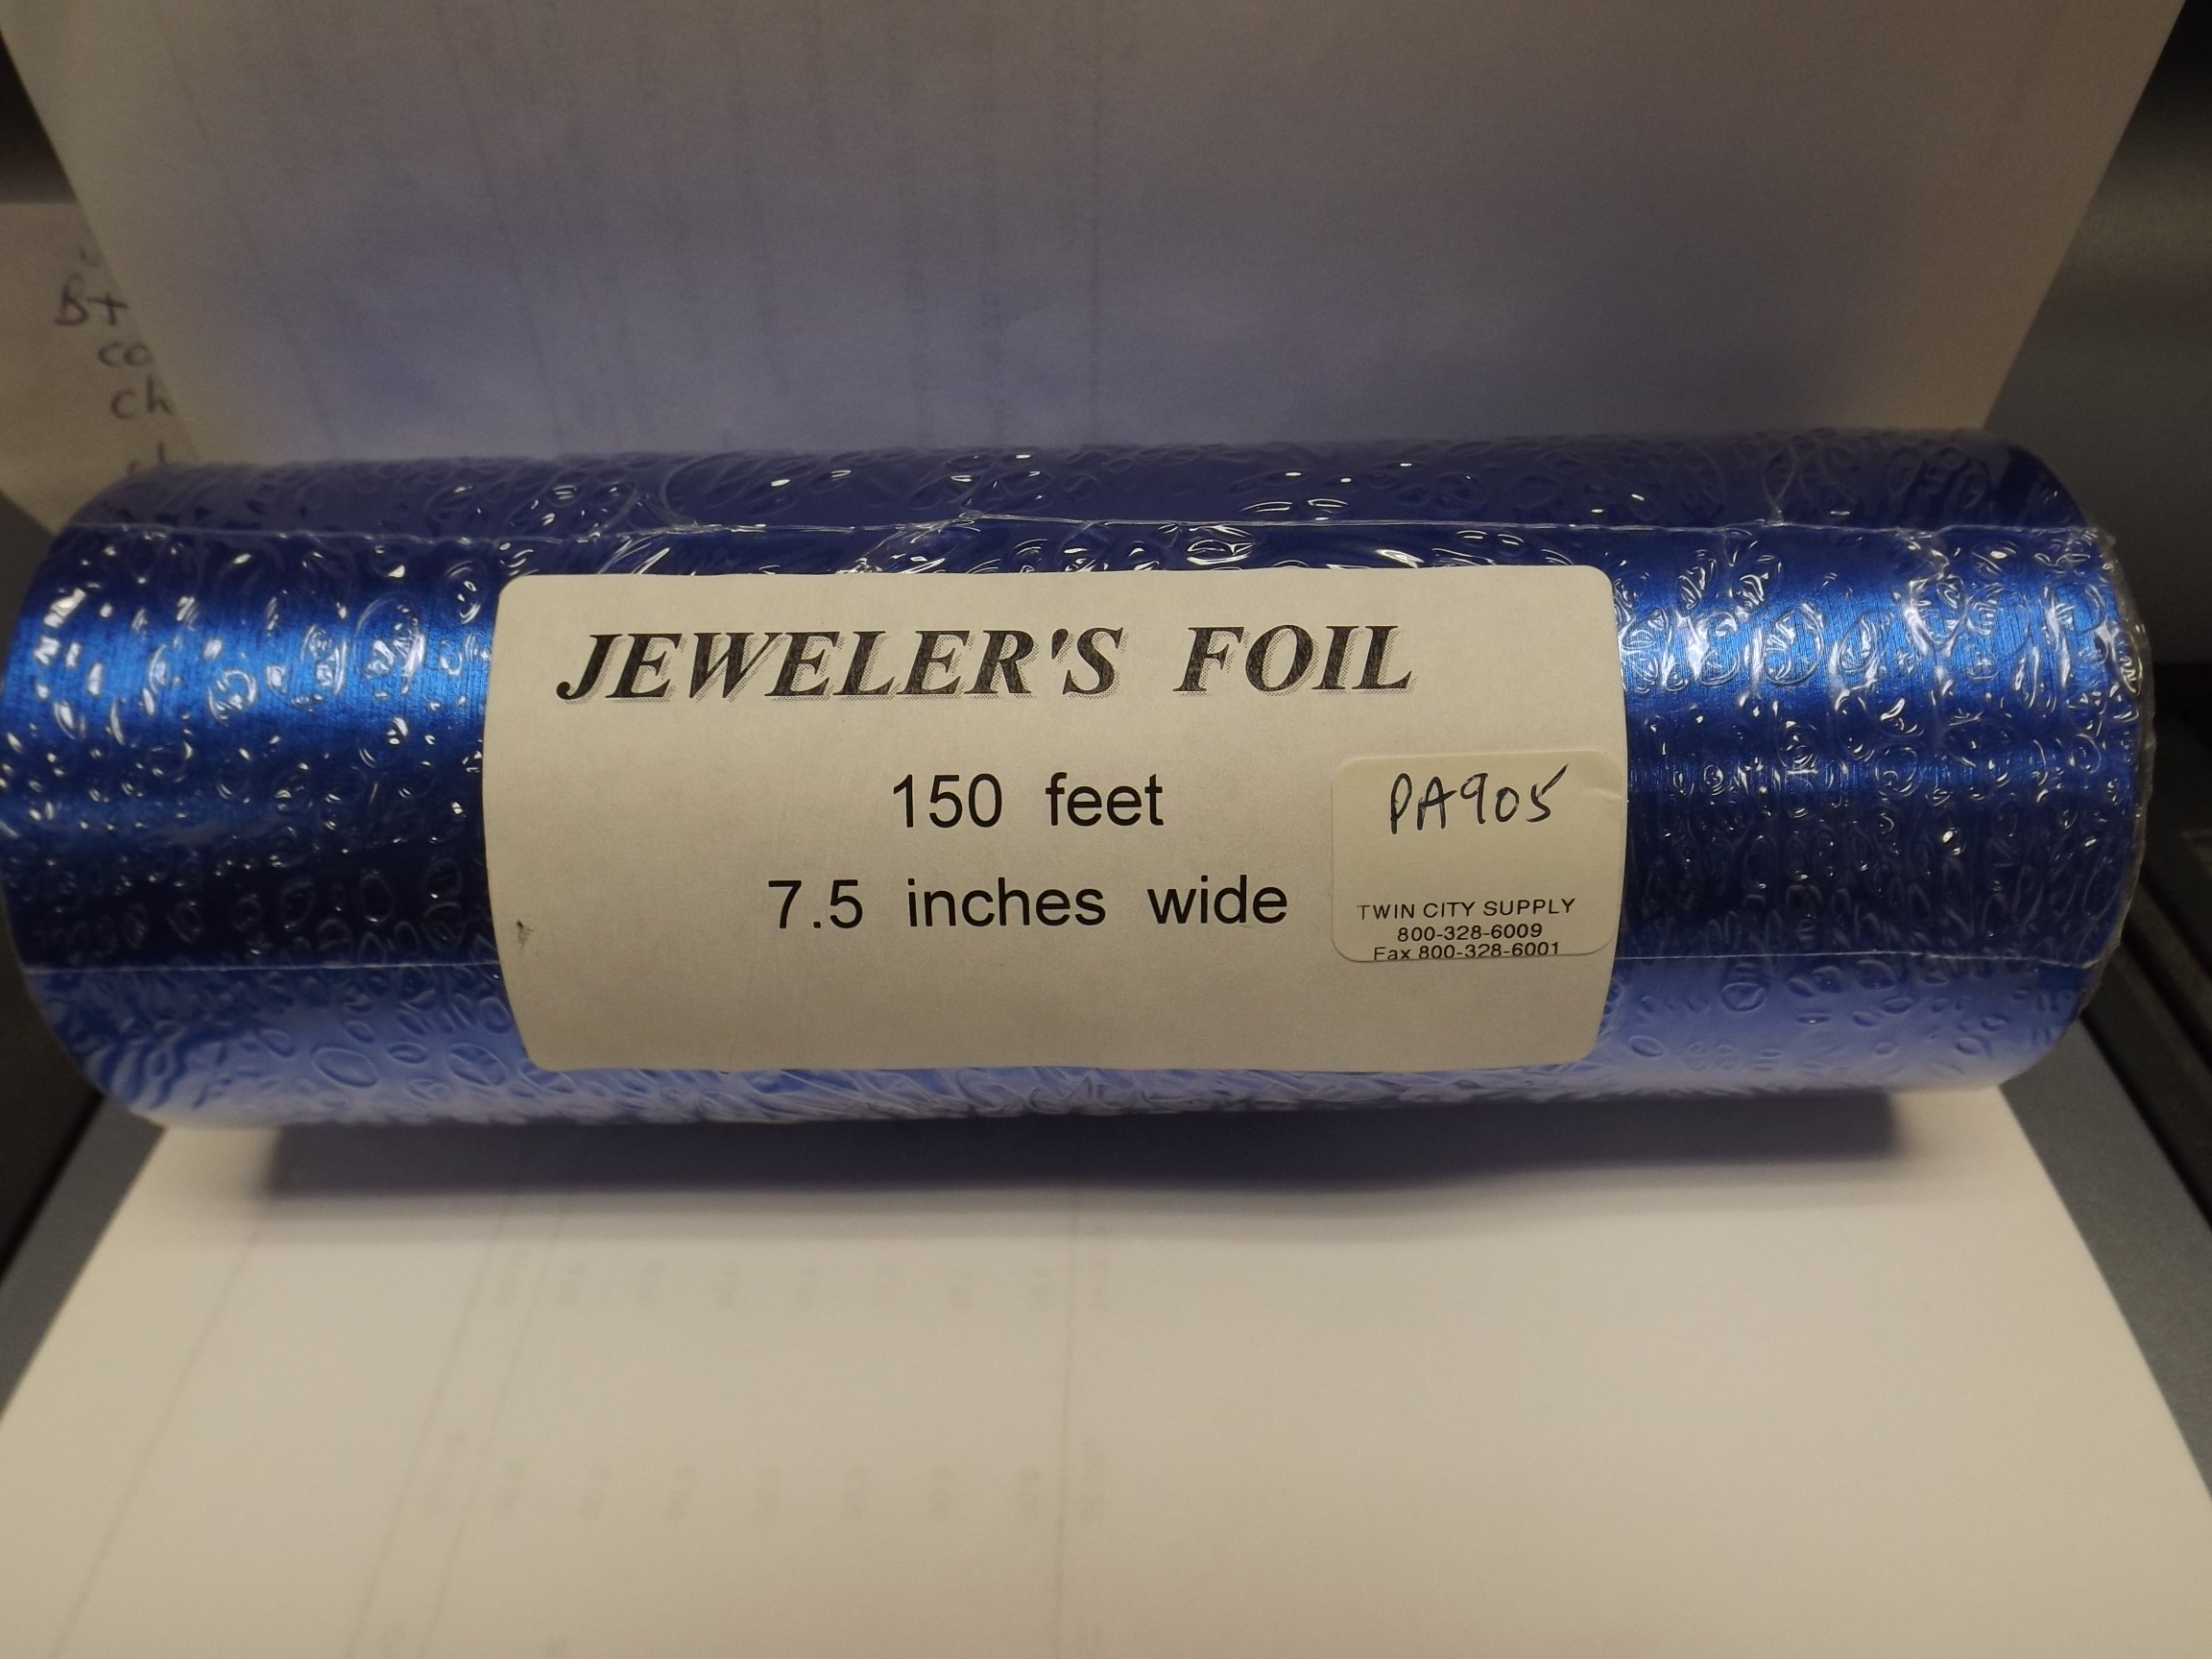 PA905 Royal Blue Satin Jewelers Roll of Foil Wrapping Paper